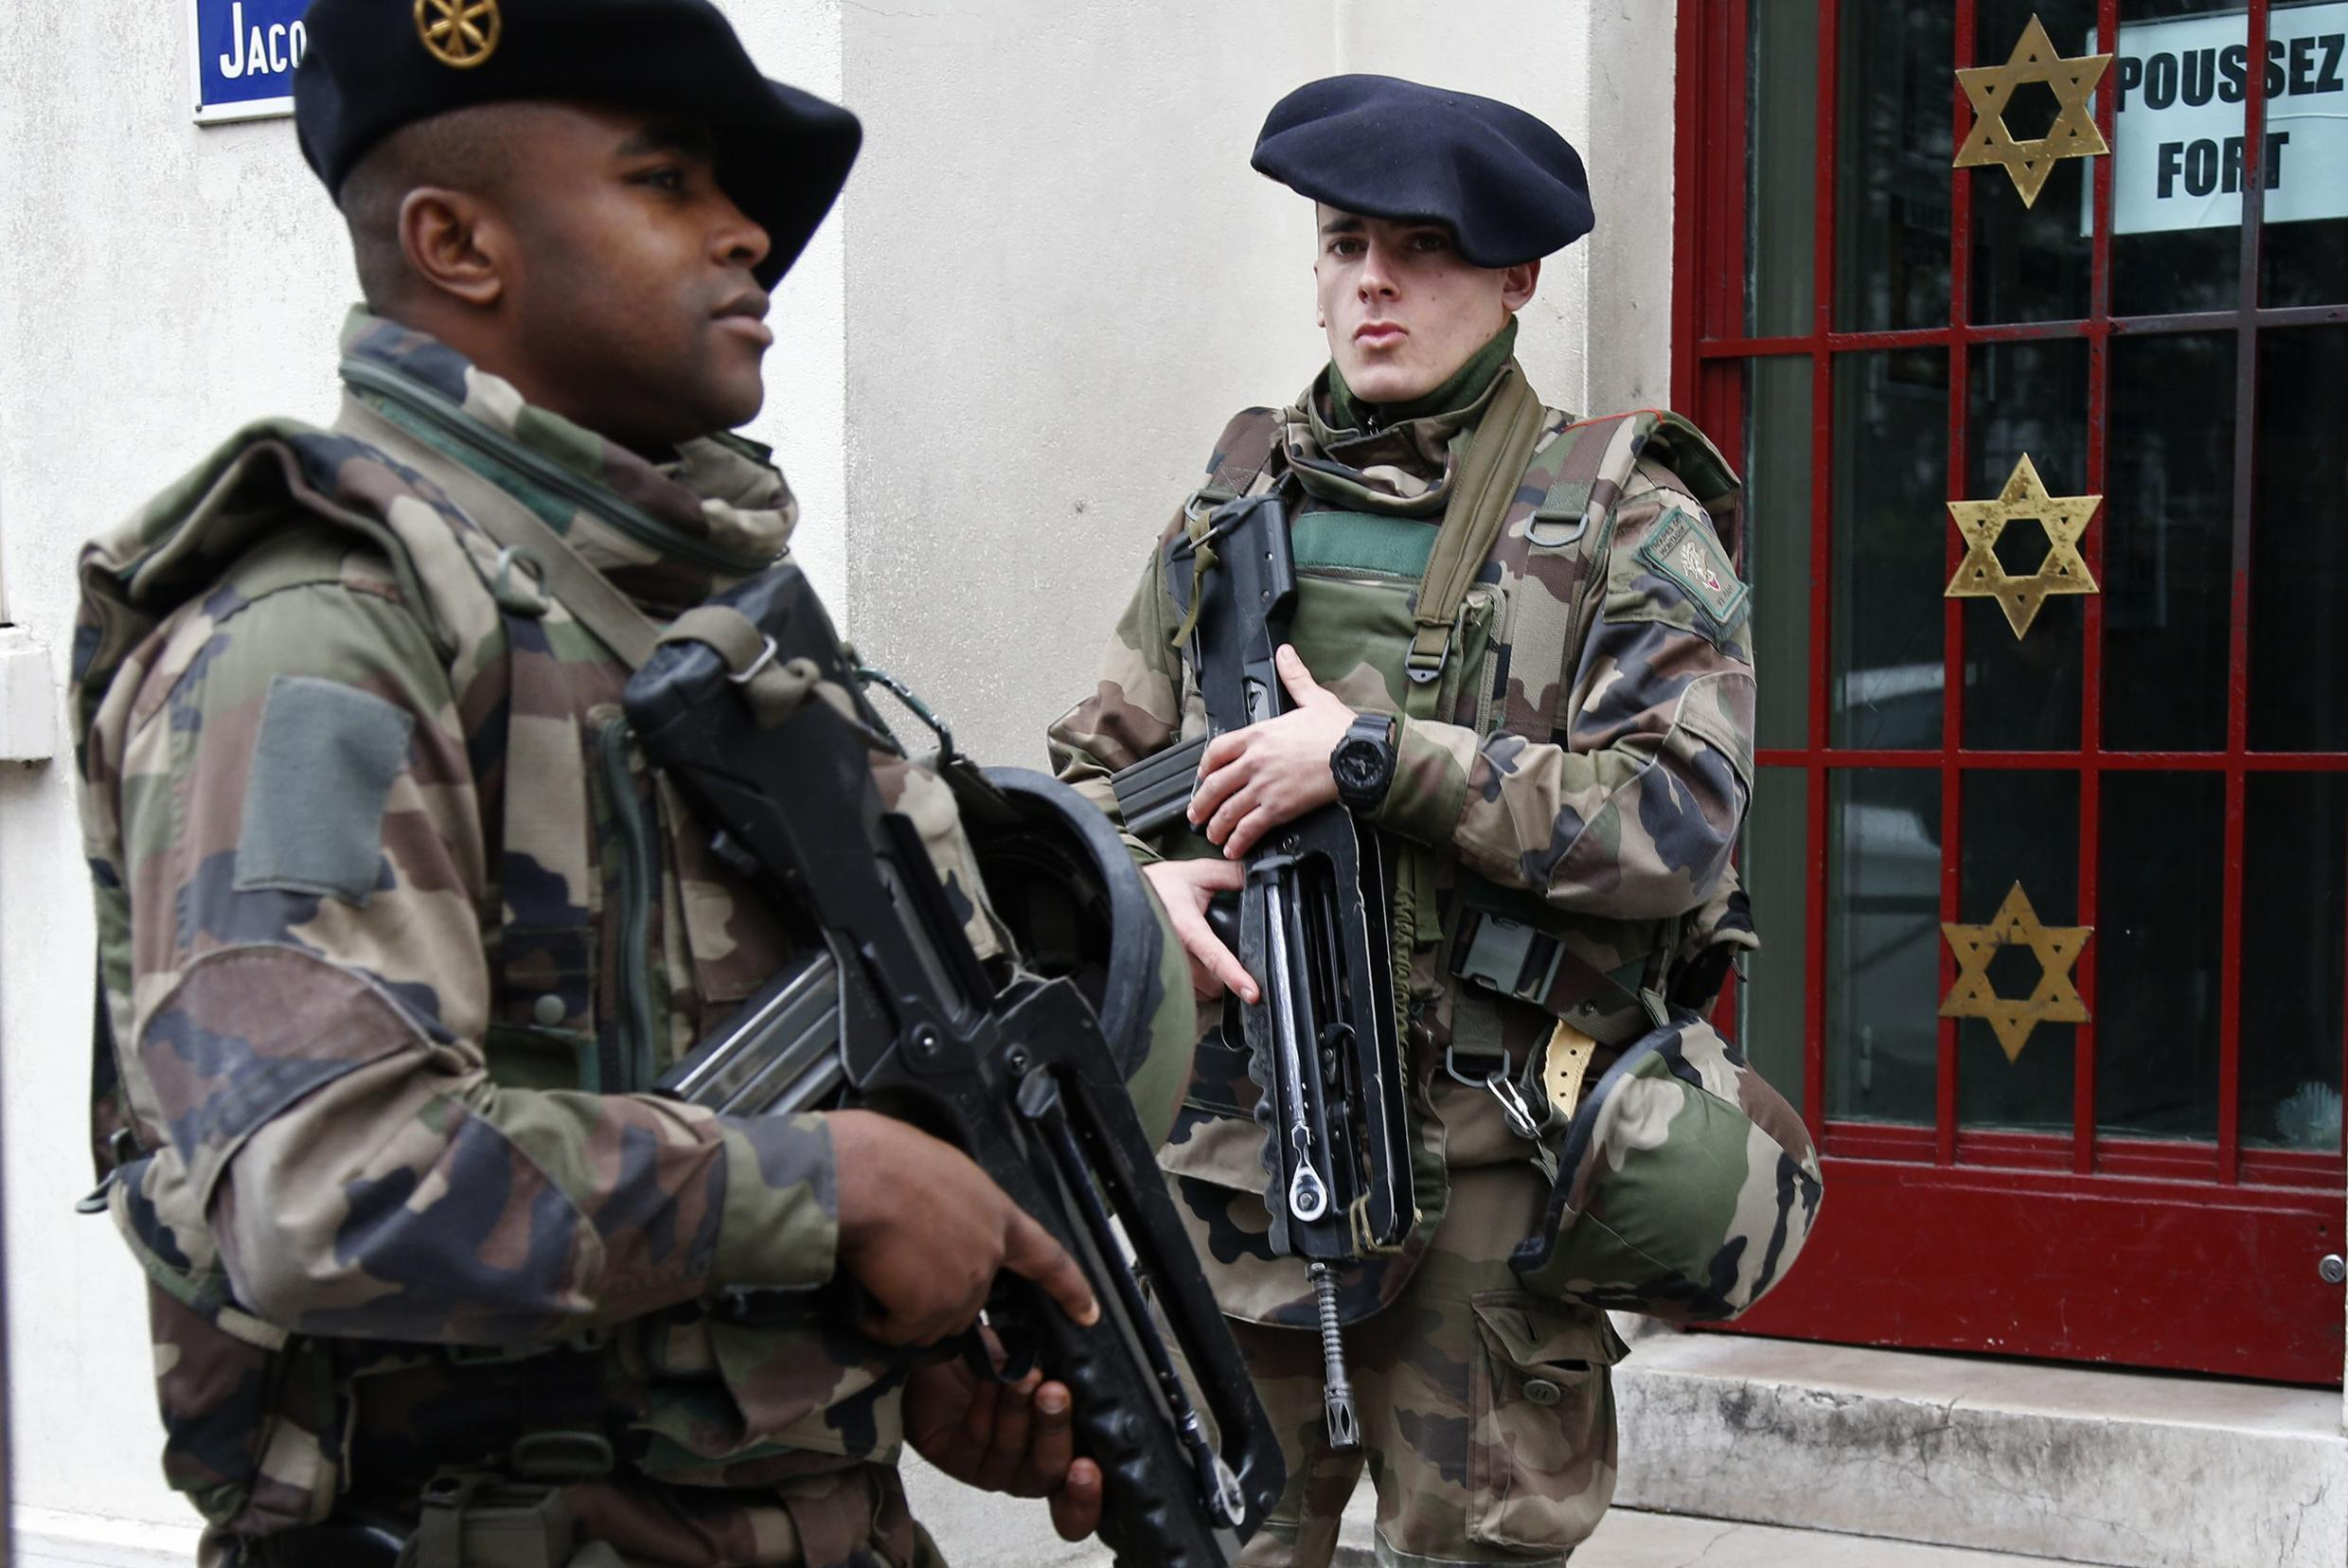 France has deployed 10,000 soldiers on home soil, 13 January 2015